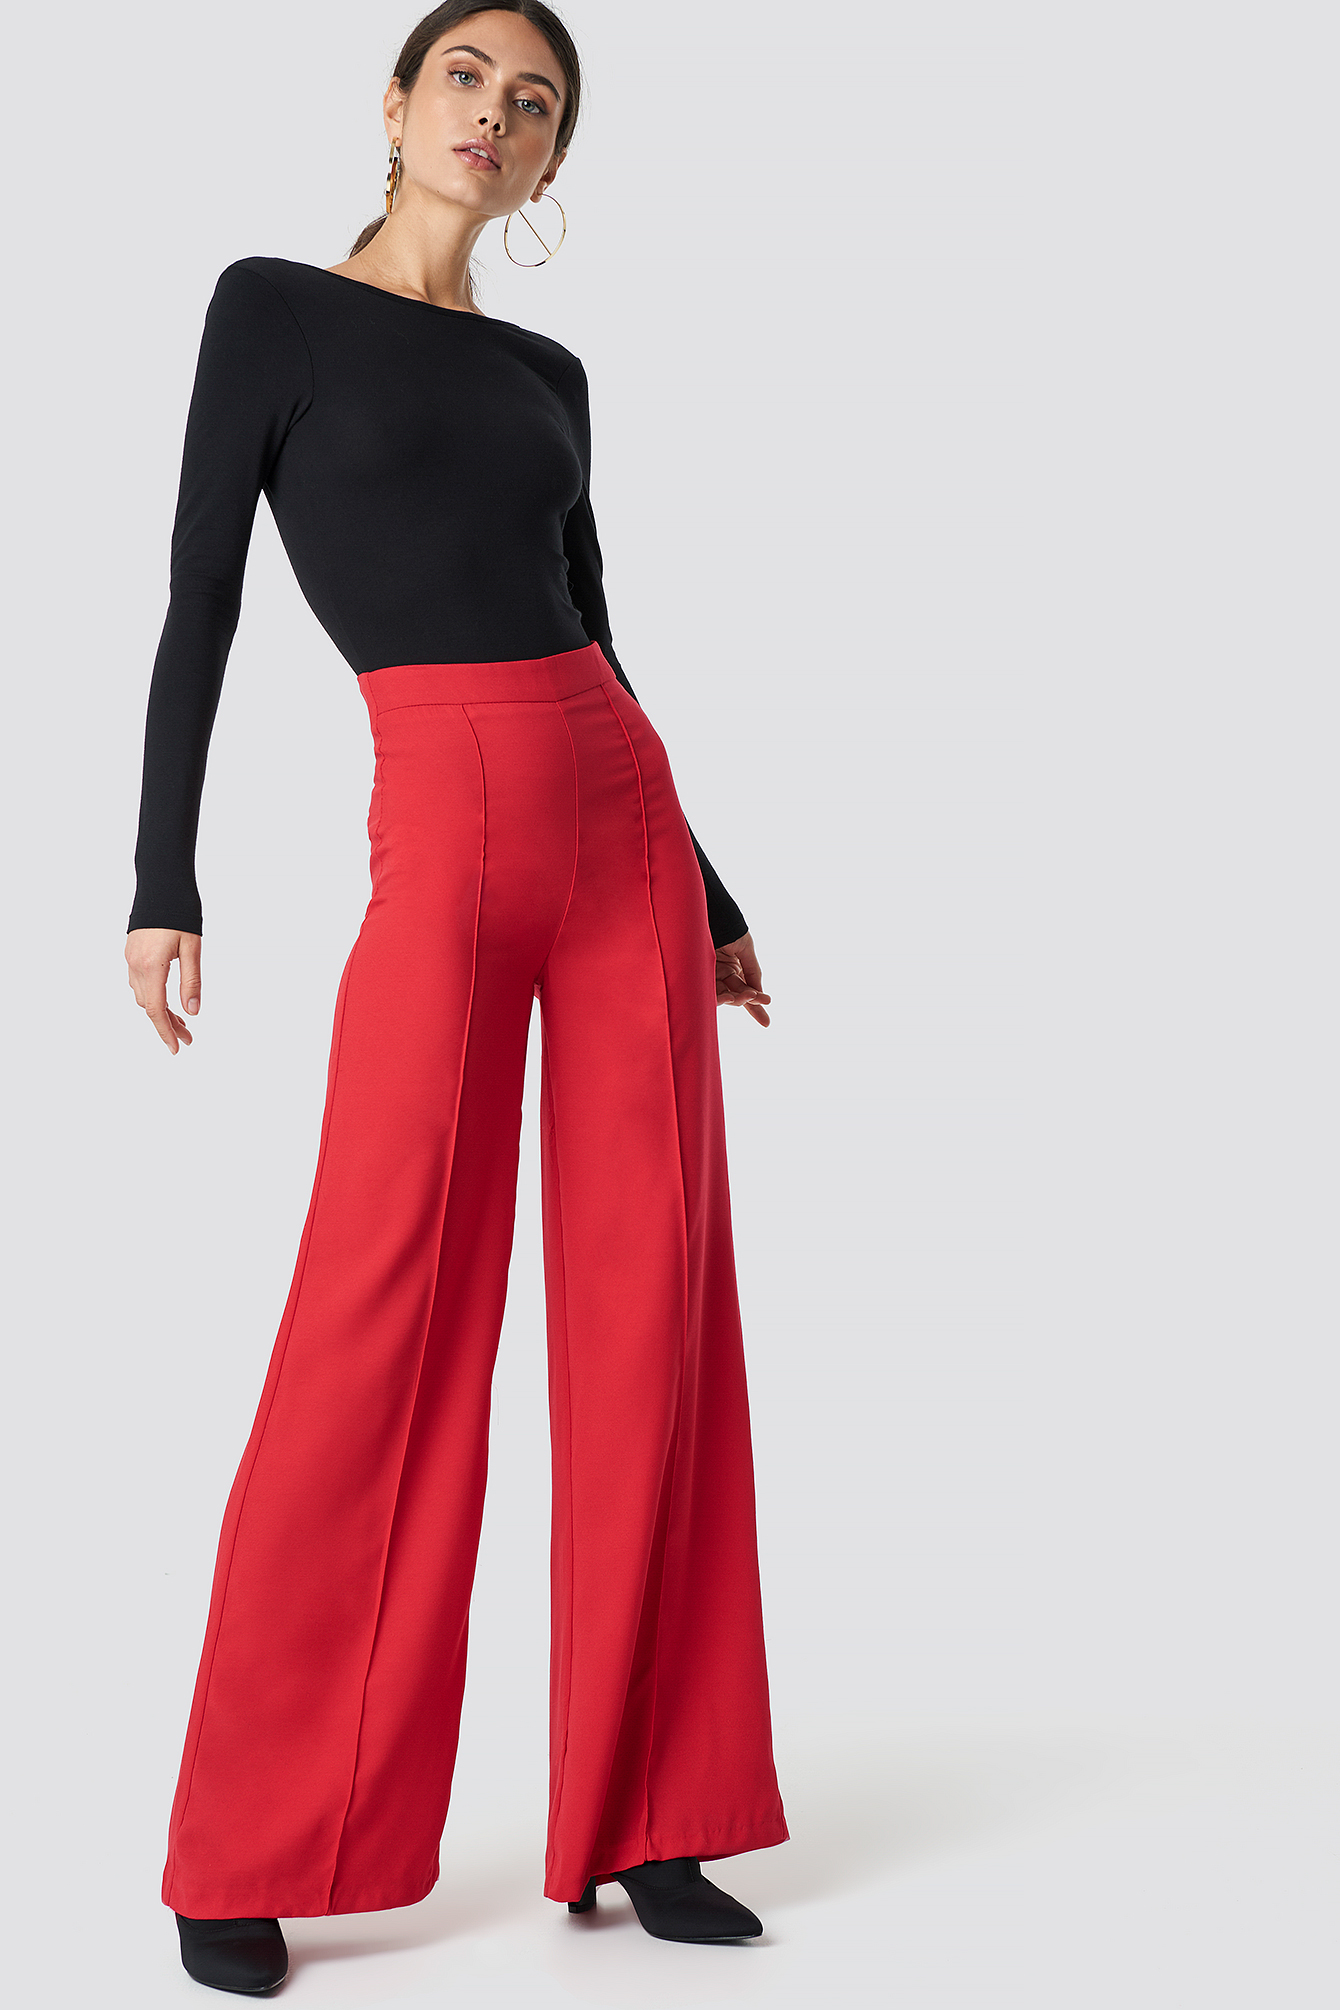 trendyol -  High Waisted Wide Leg Pants - Red